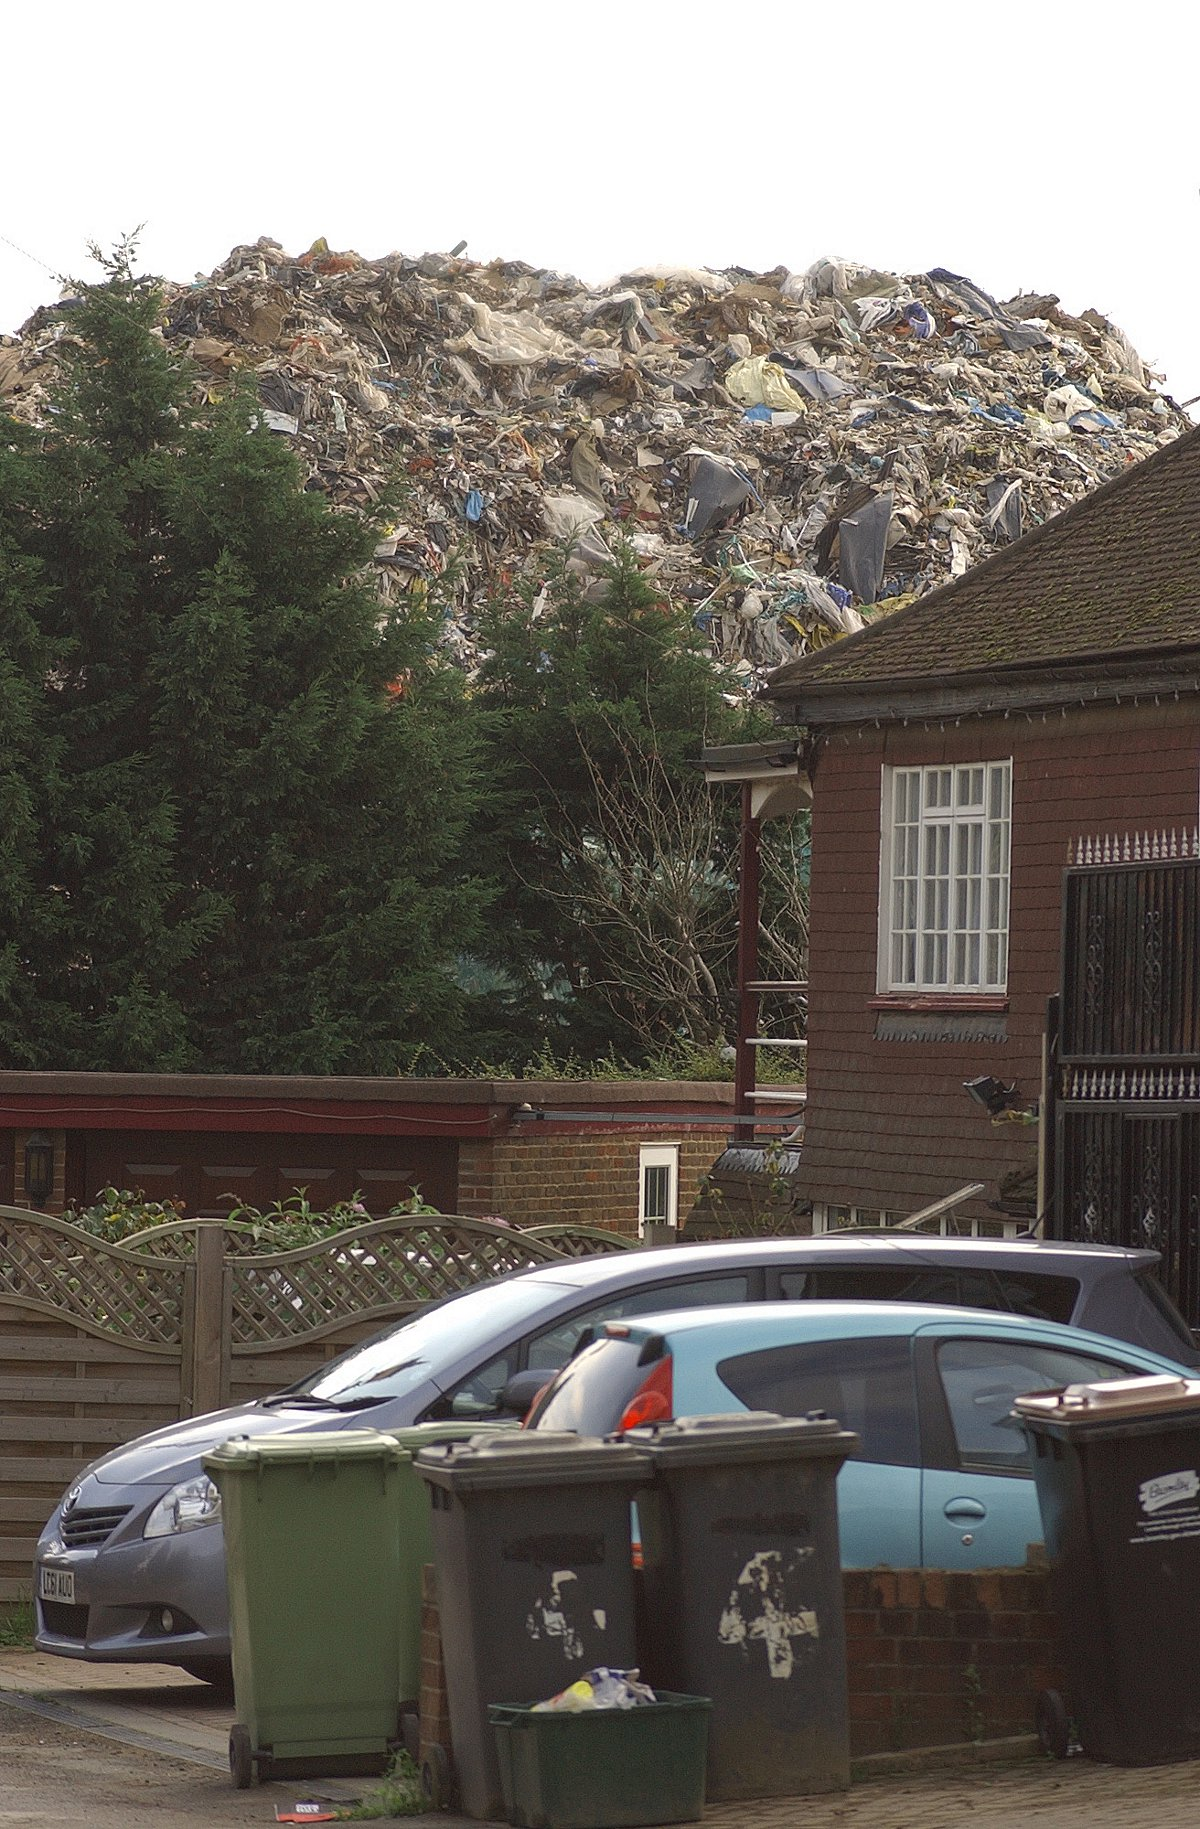 The Waste4Fuel site in St Paul's Cray